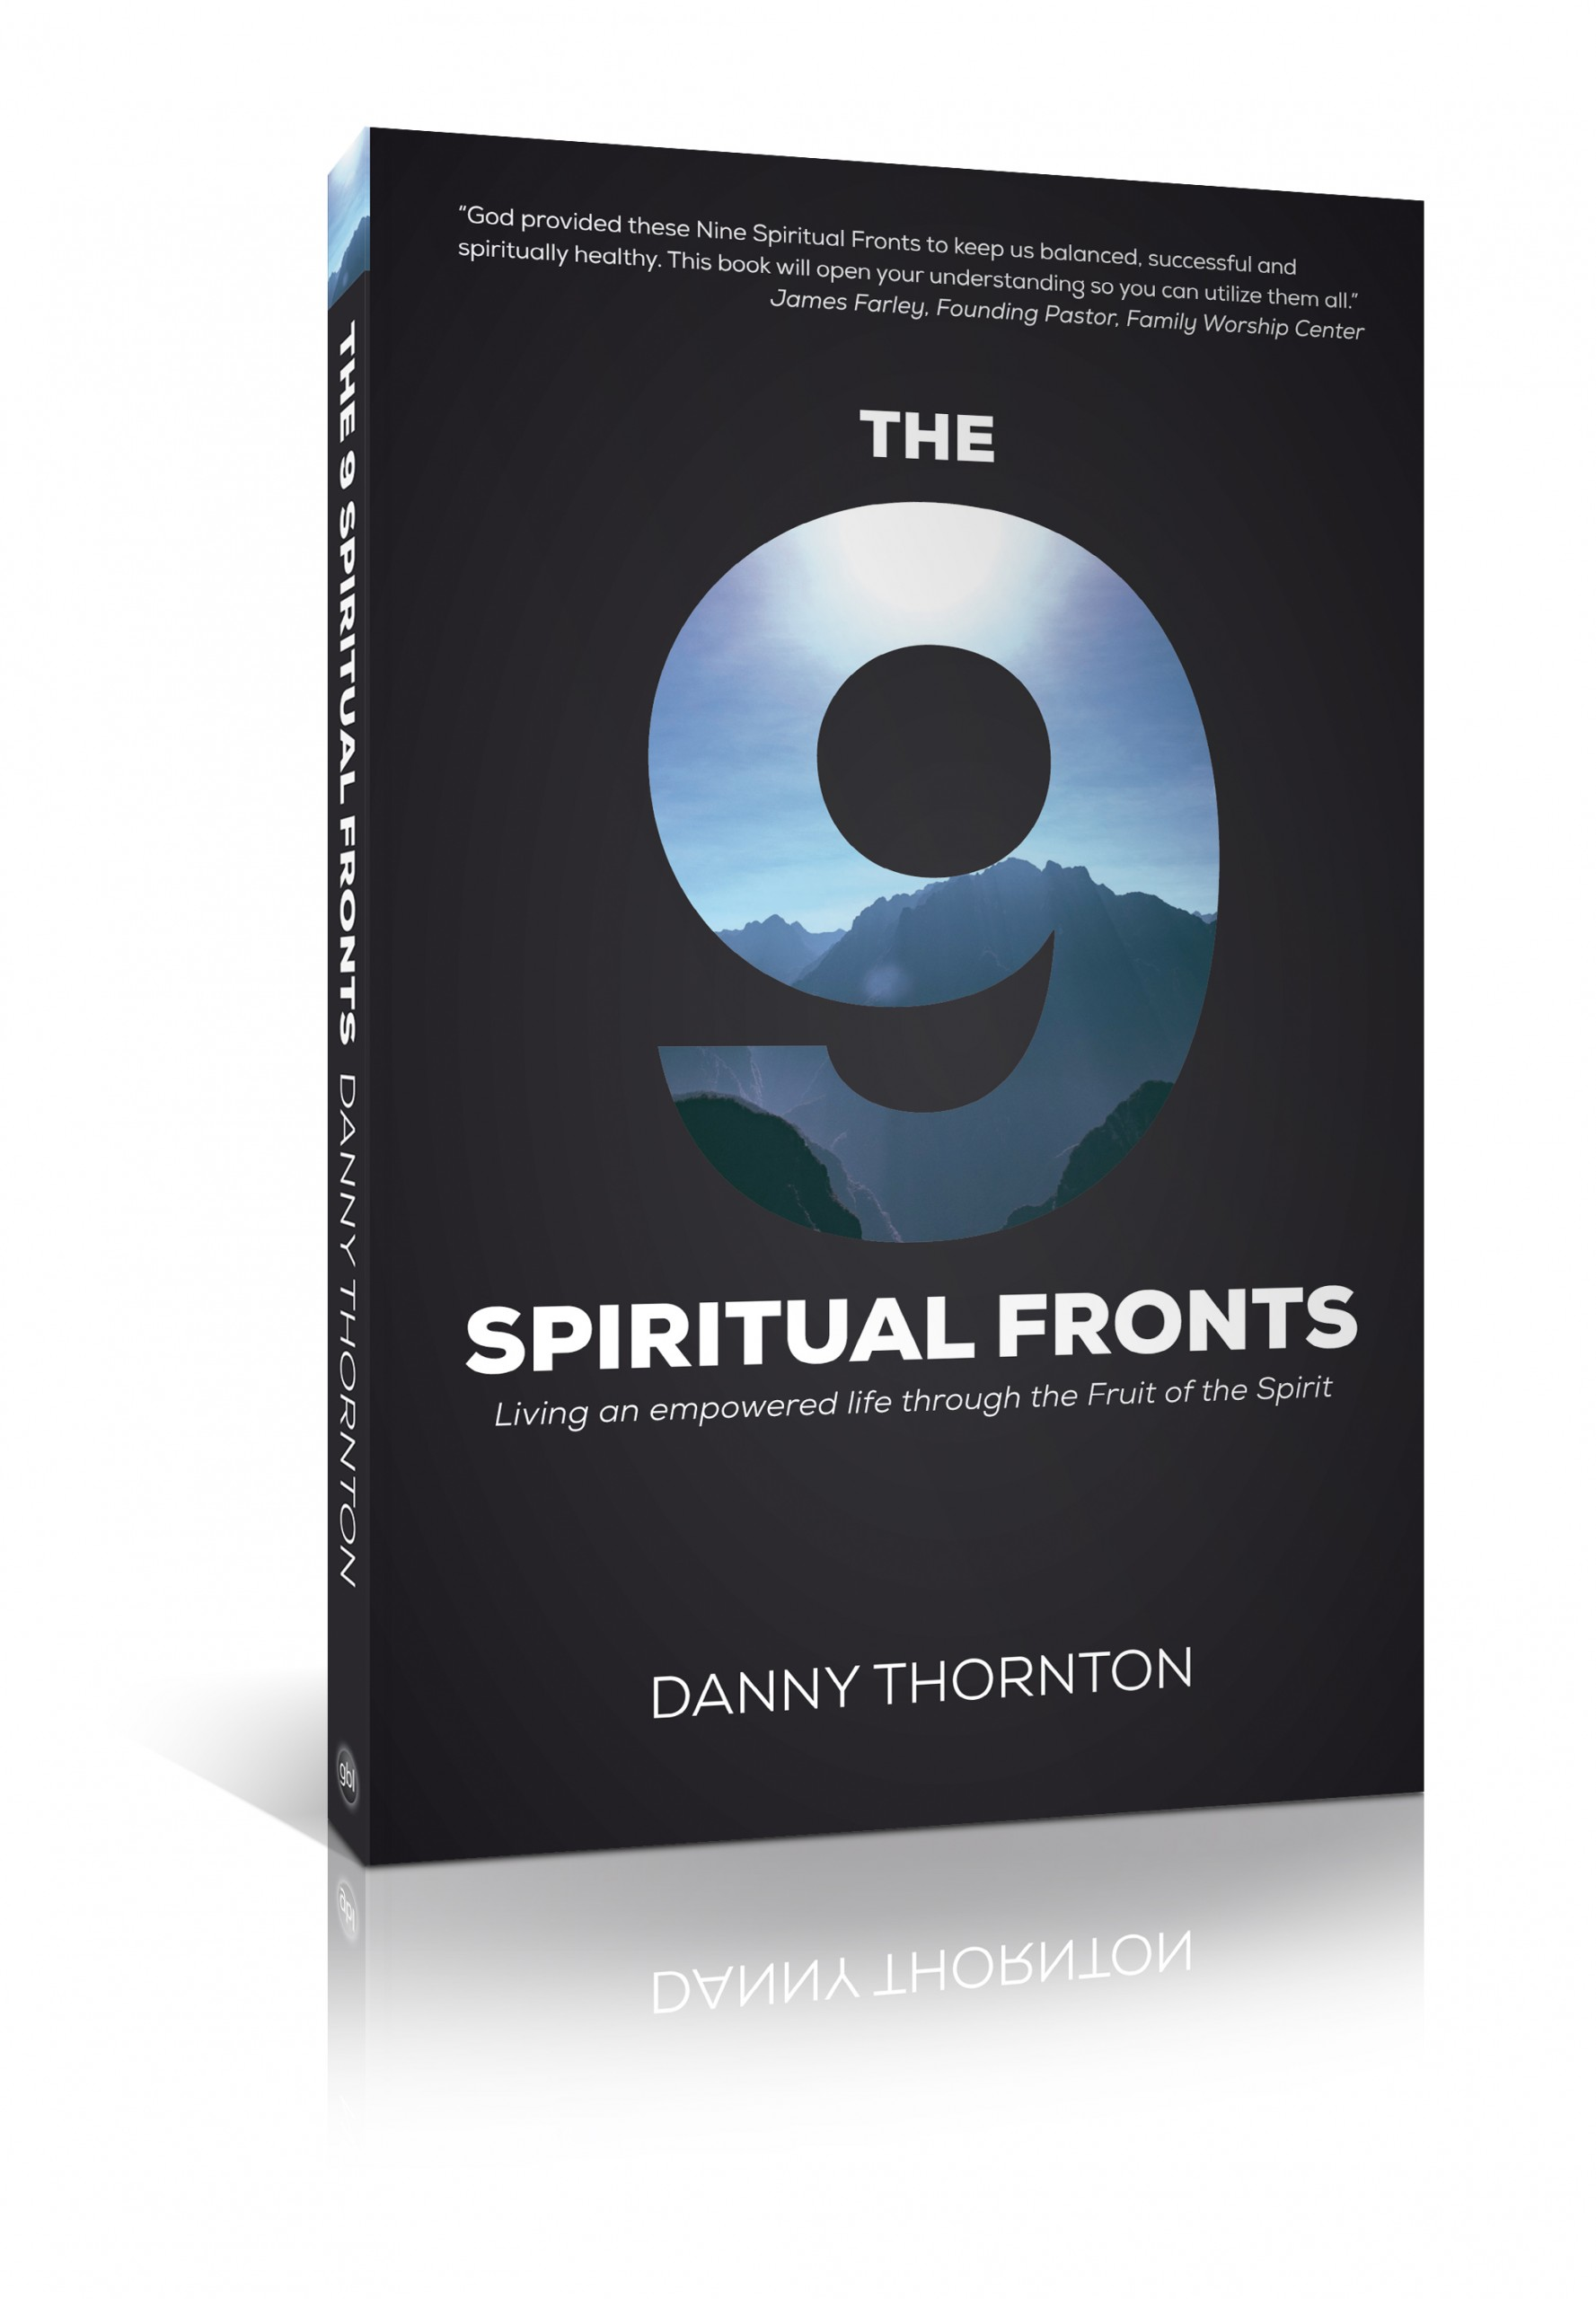 The 9 Spiritual Fronts